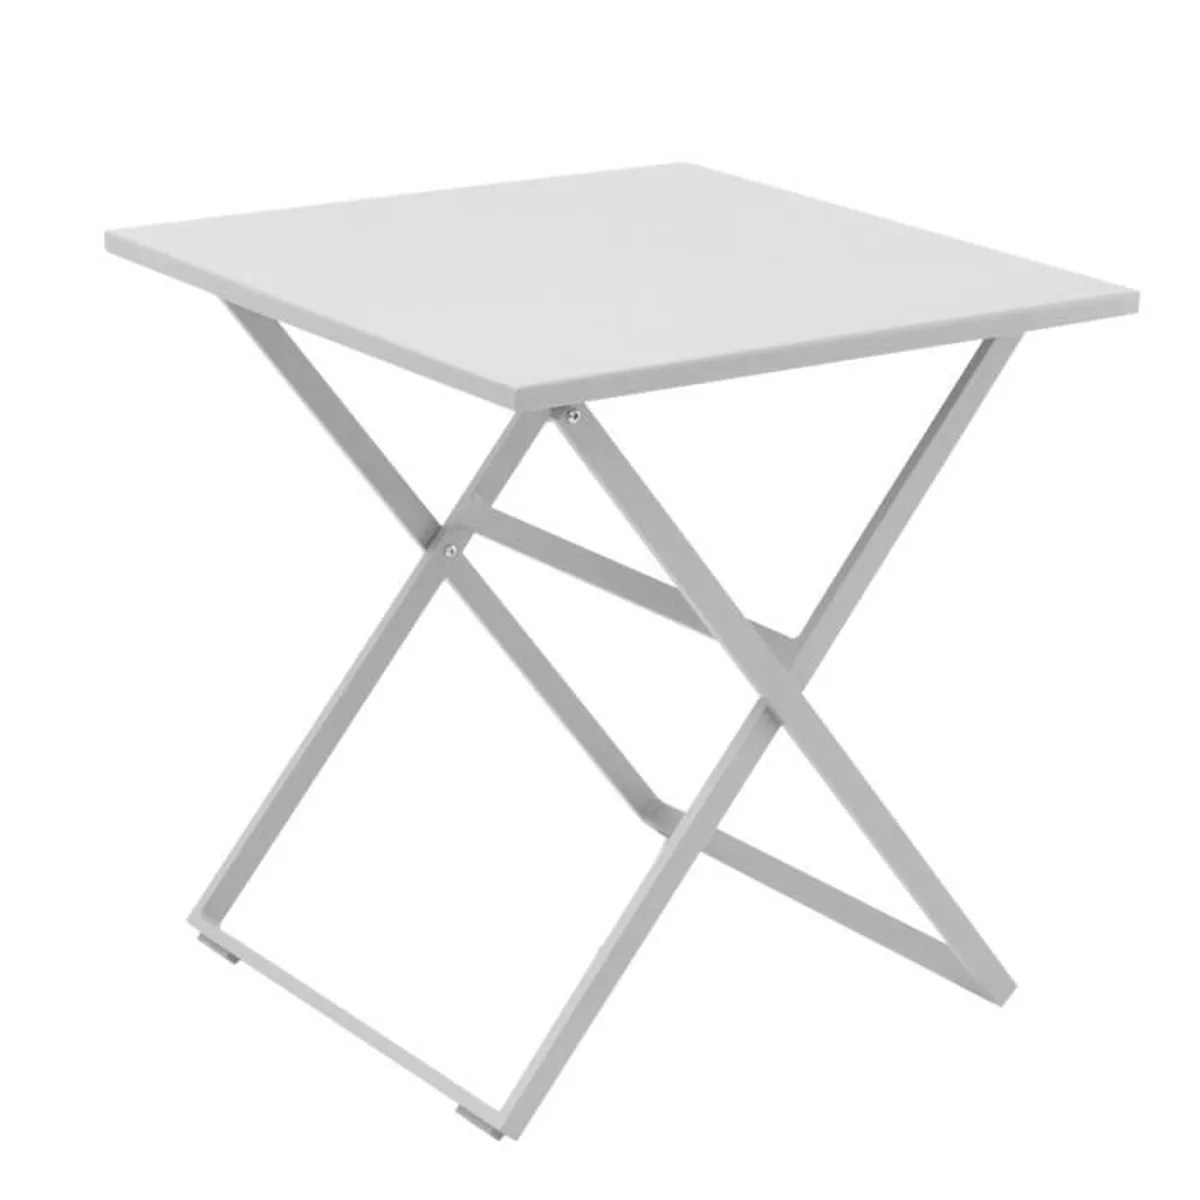 Table Exterieur Castorama Table Alu Exterieur Simple Table De Jardin En Aluminium